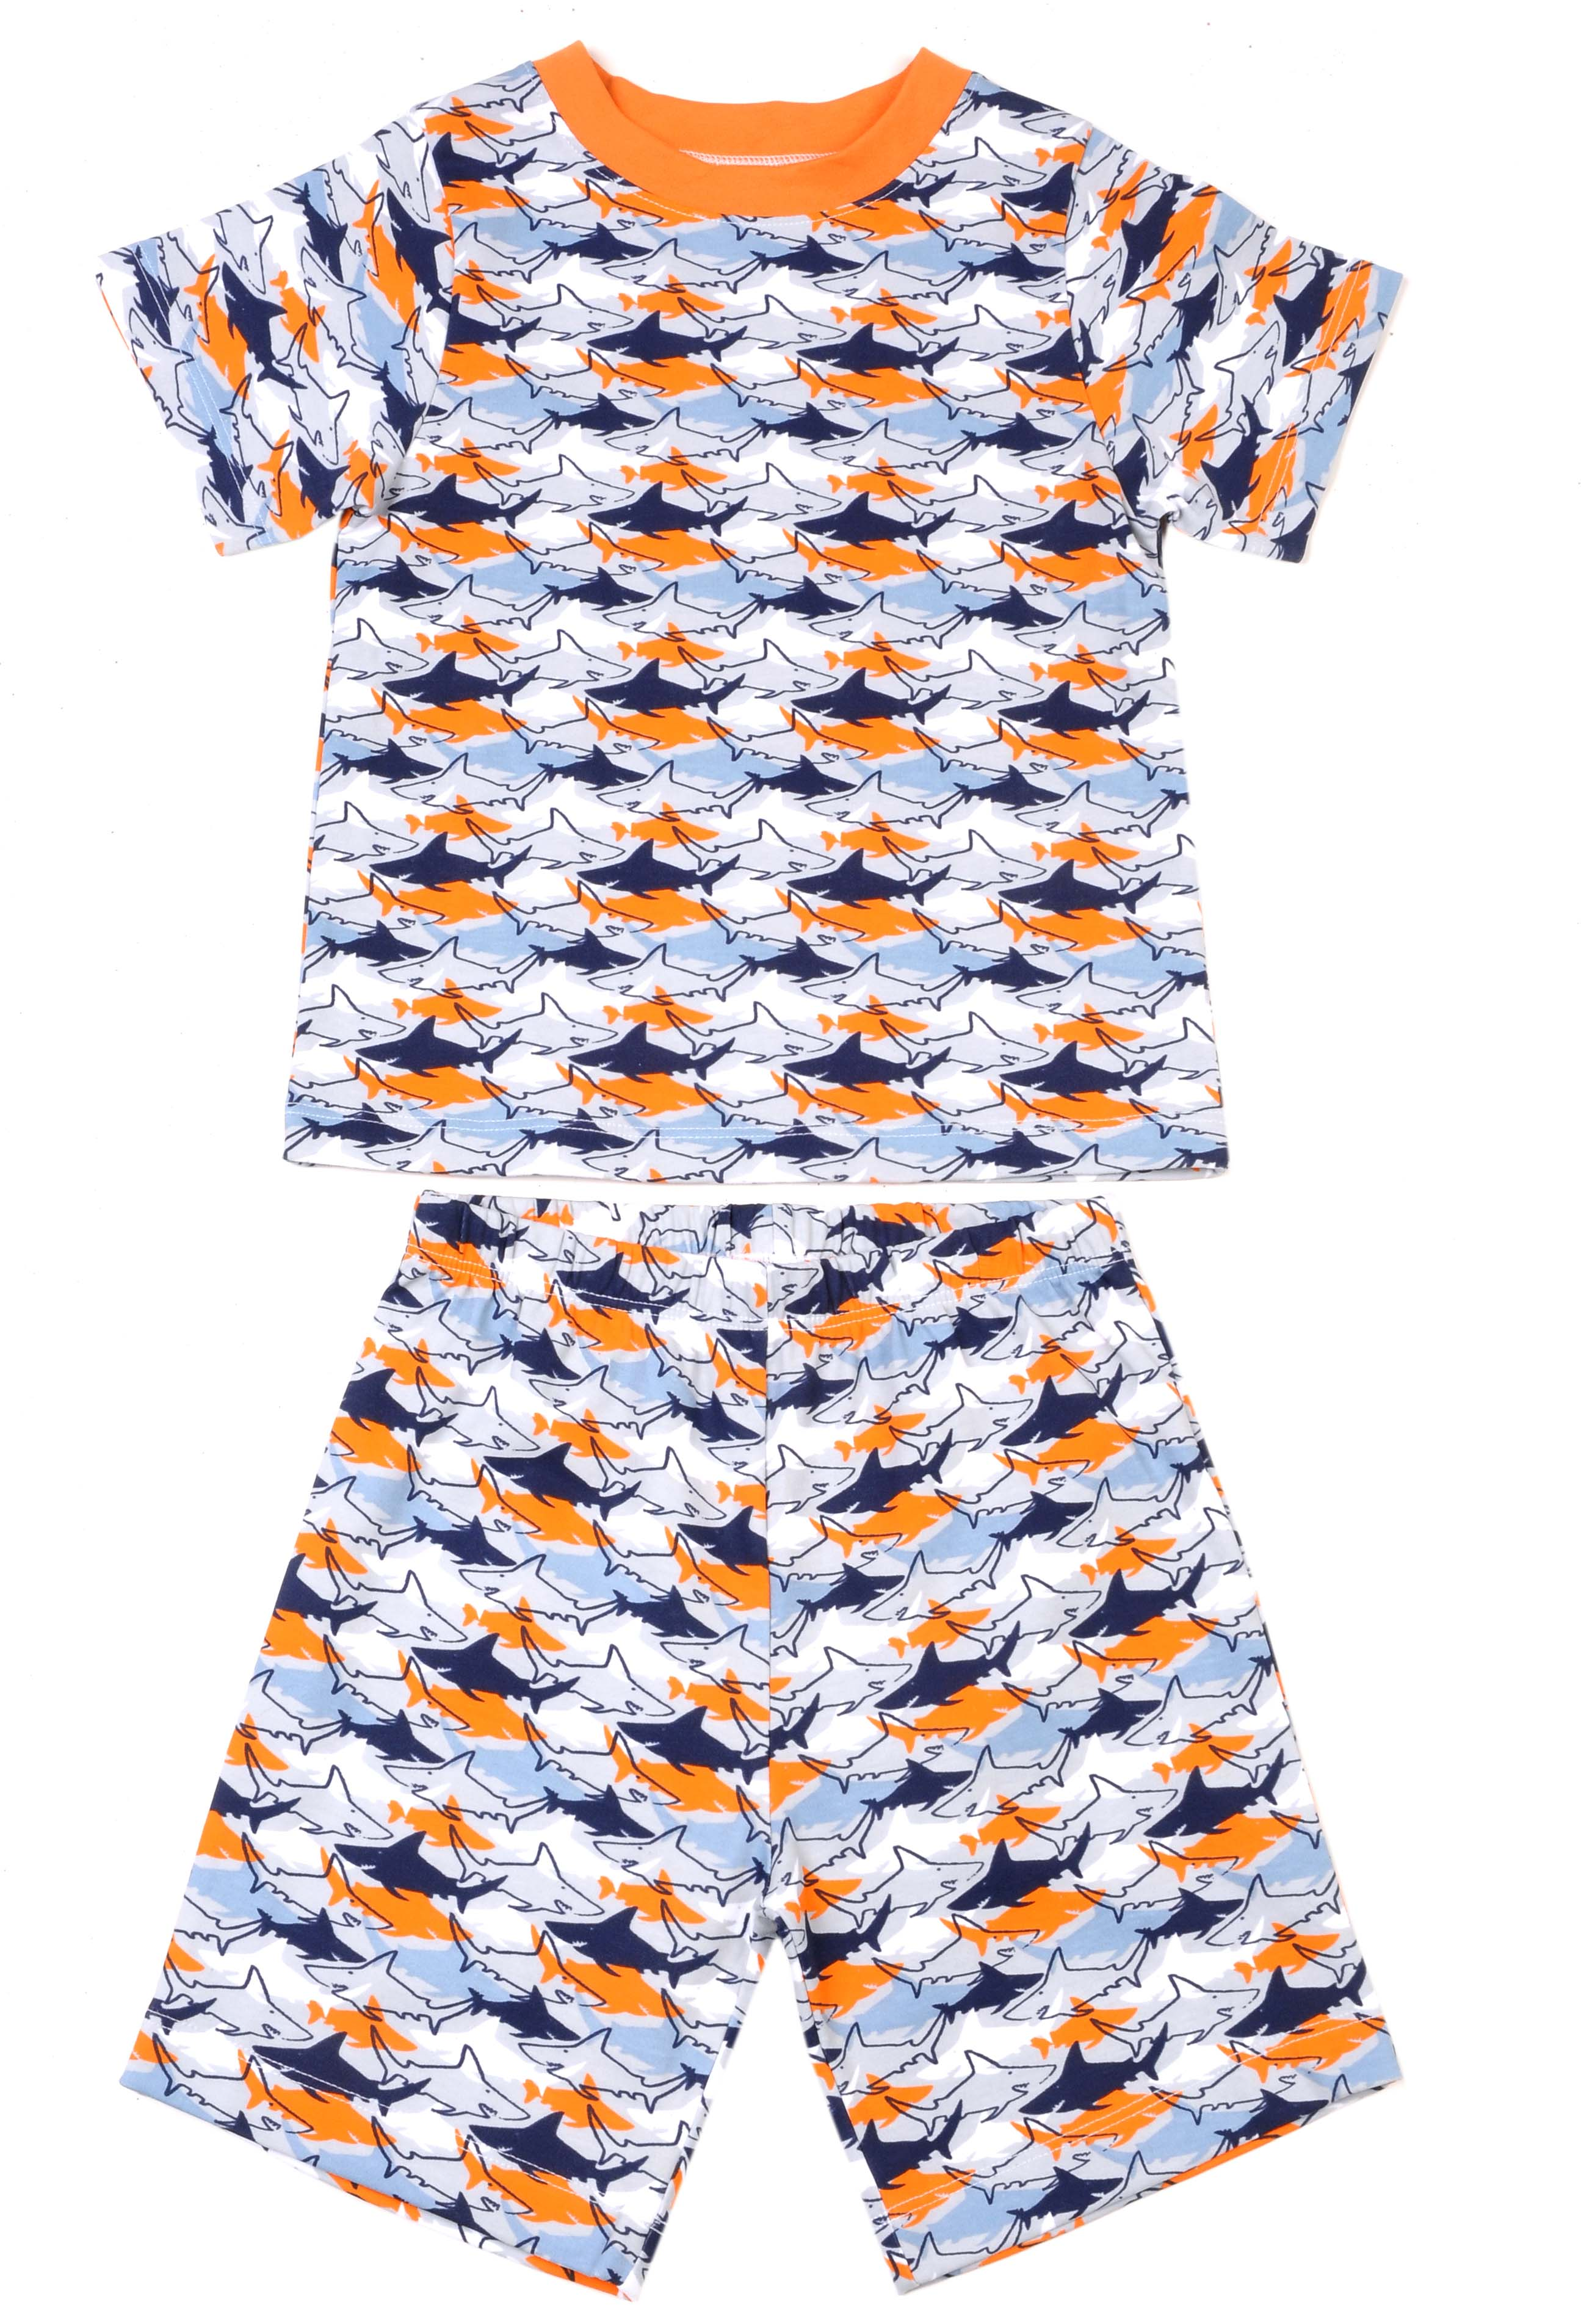 Klever Kids Short-Sleeved Allover Shark Pajama Set